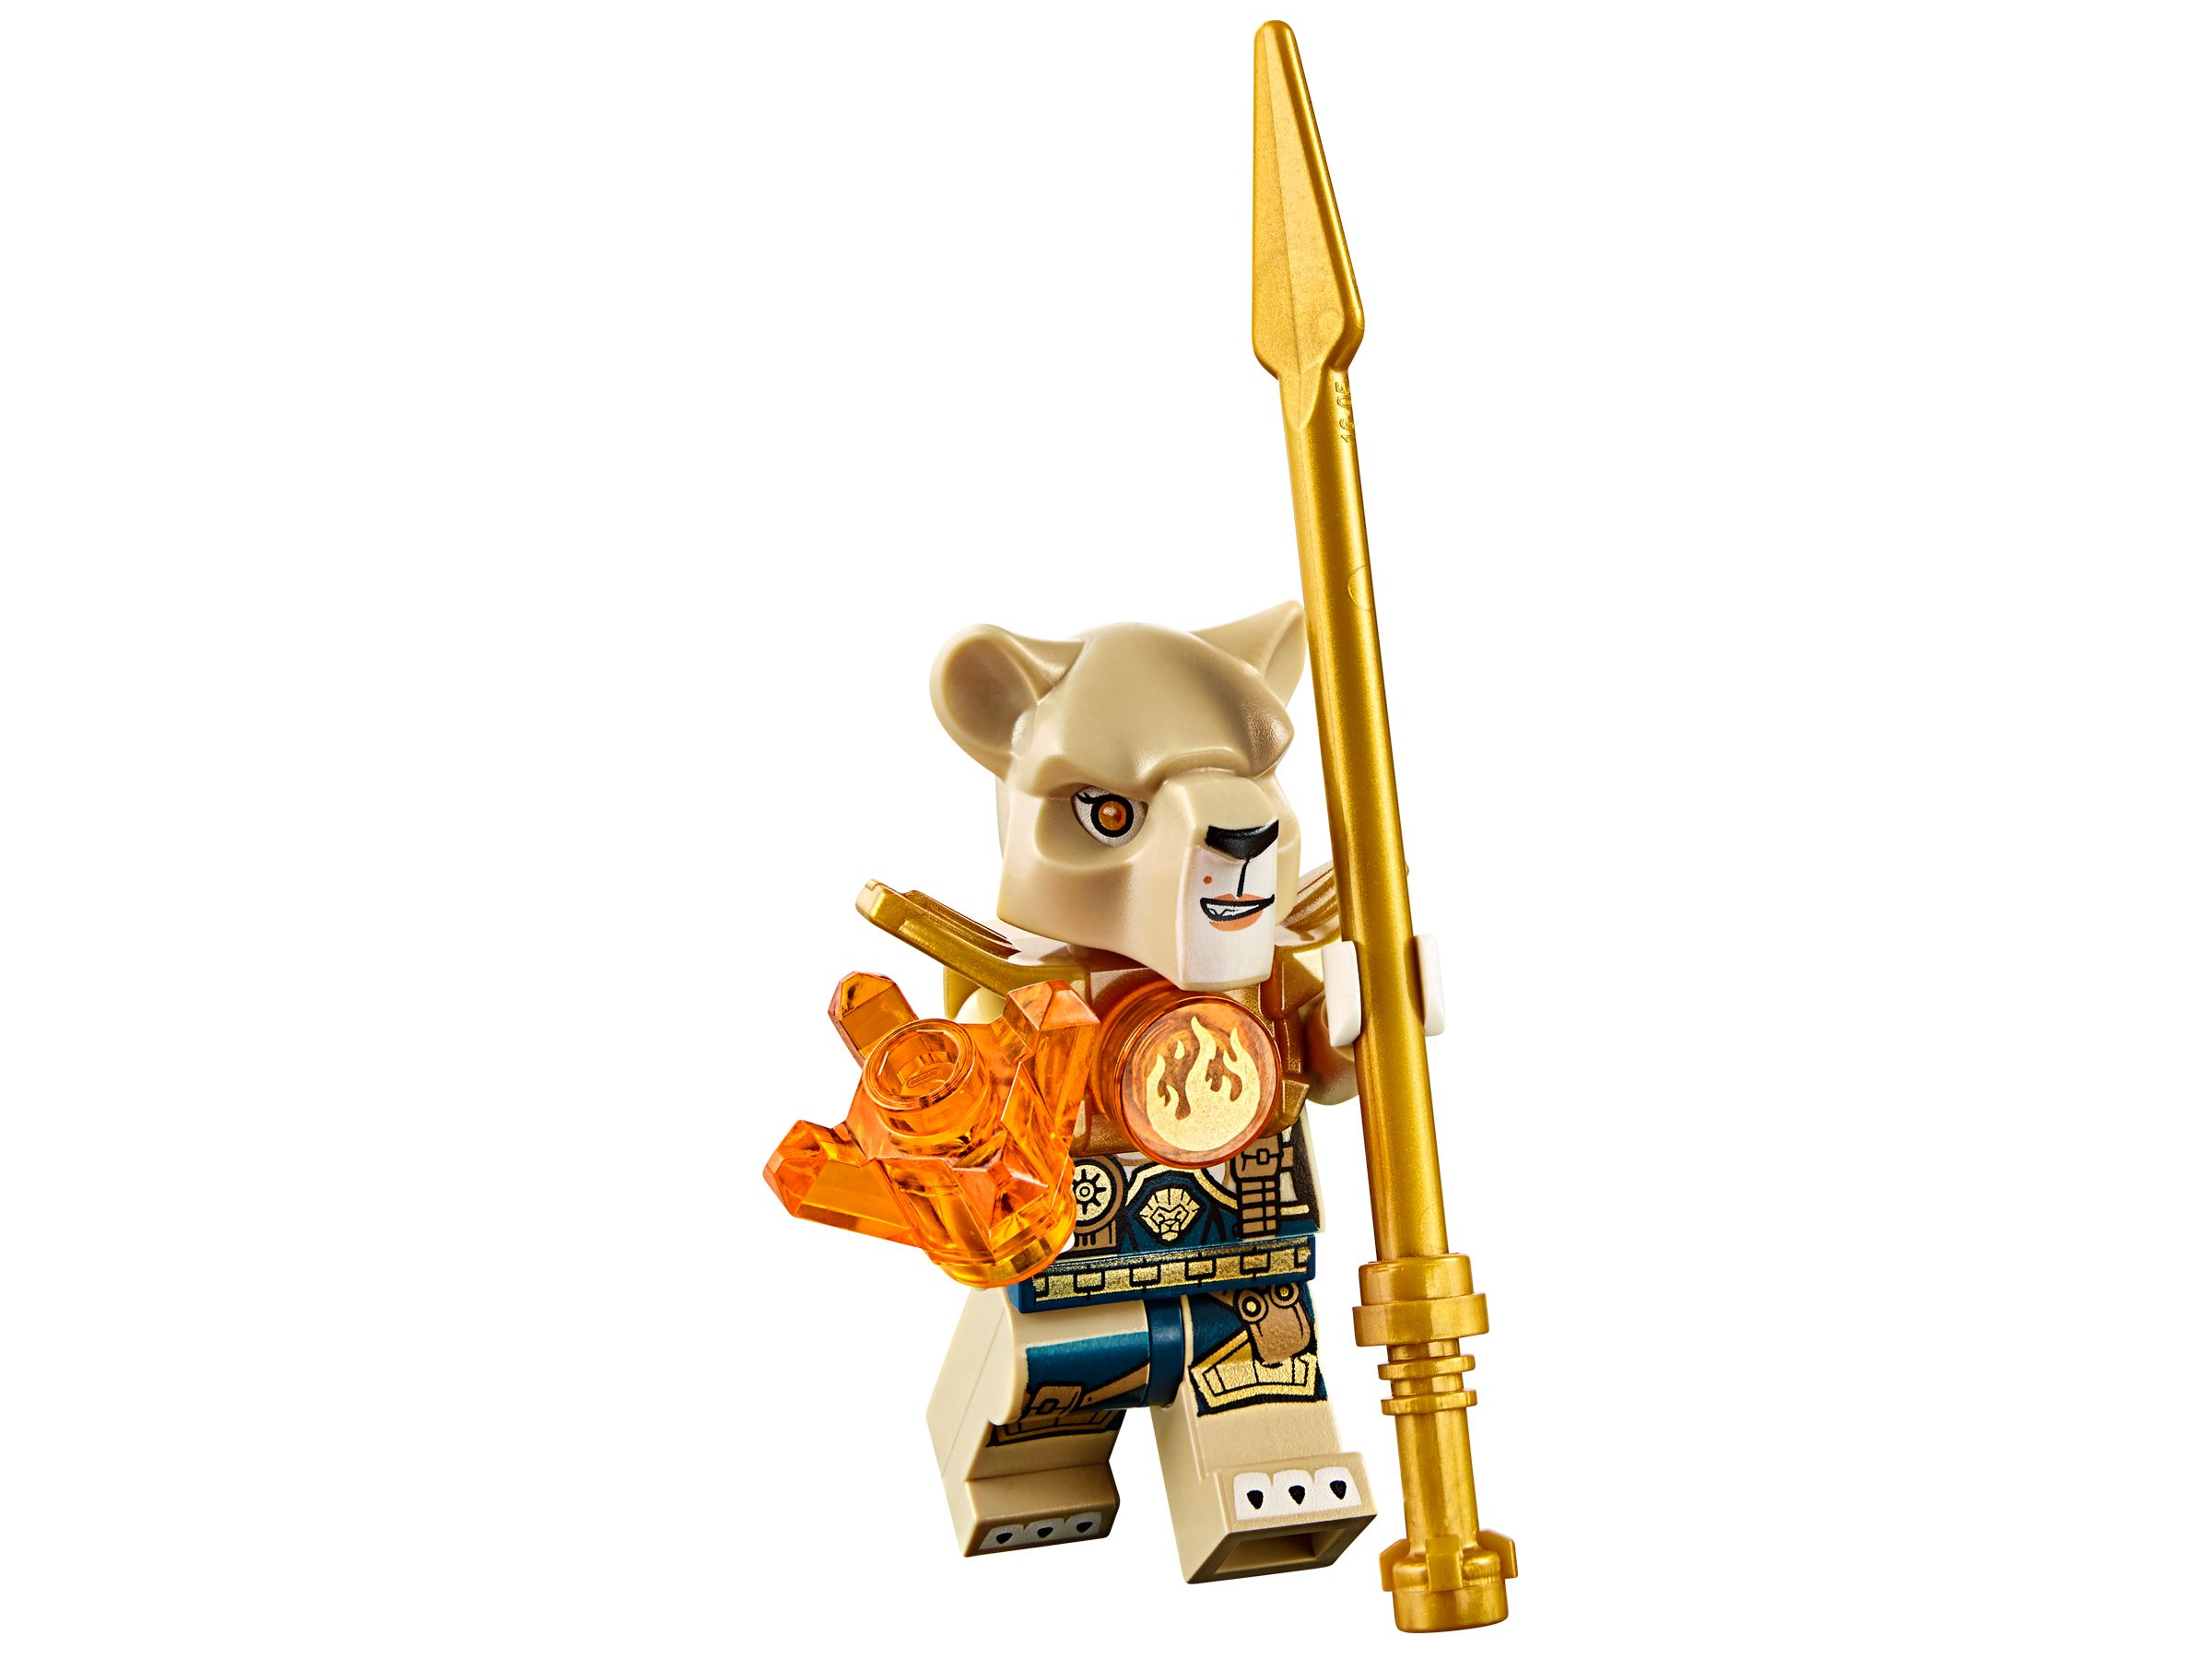 LEGO Legends Of Chima 70229 Löwenstamm-Set LEGO_70229_alt2.jpg